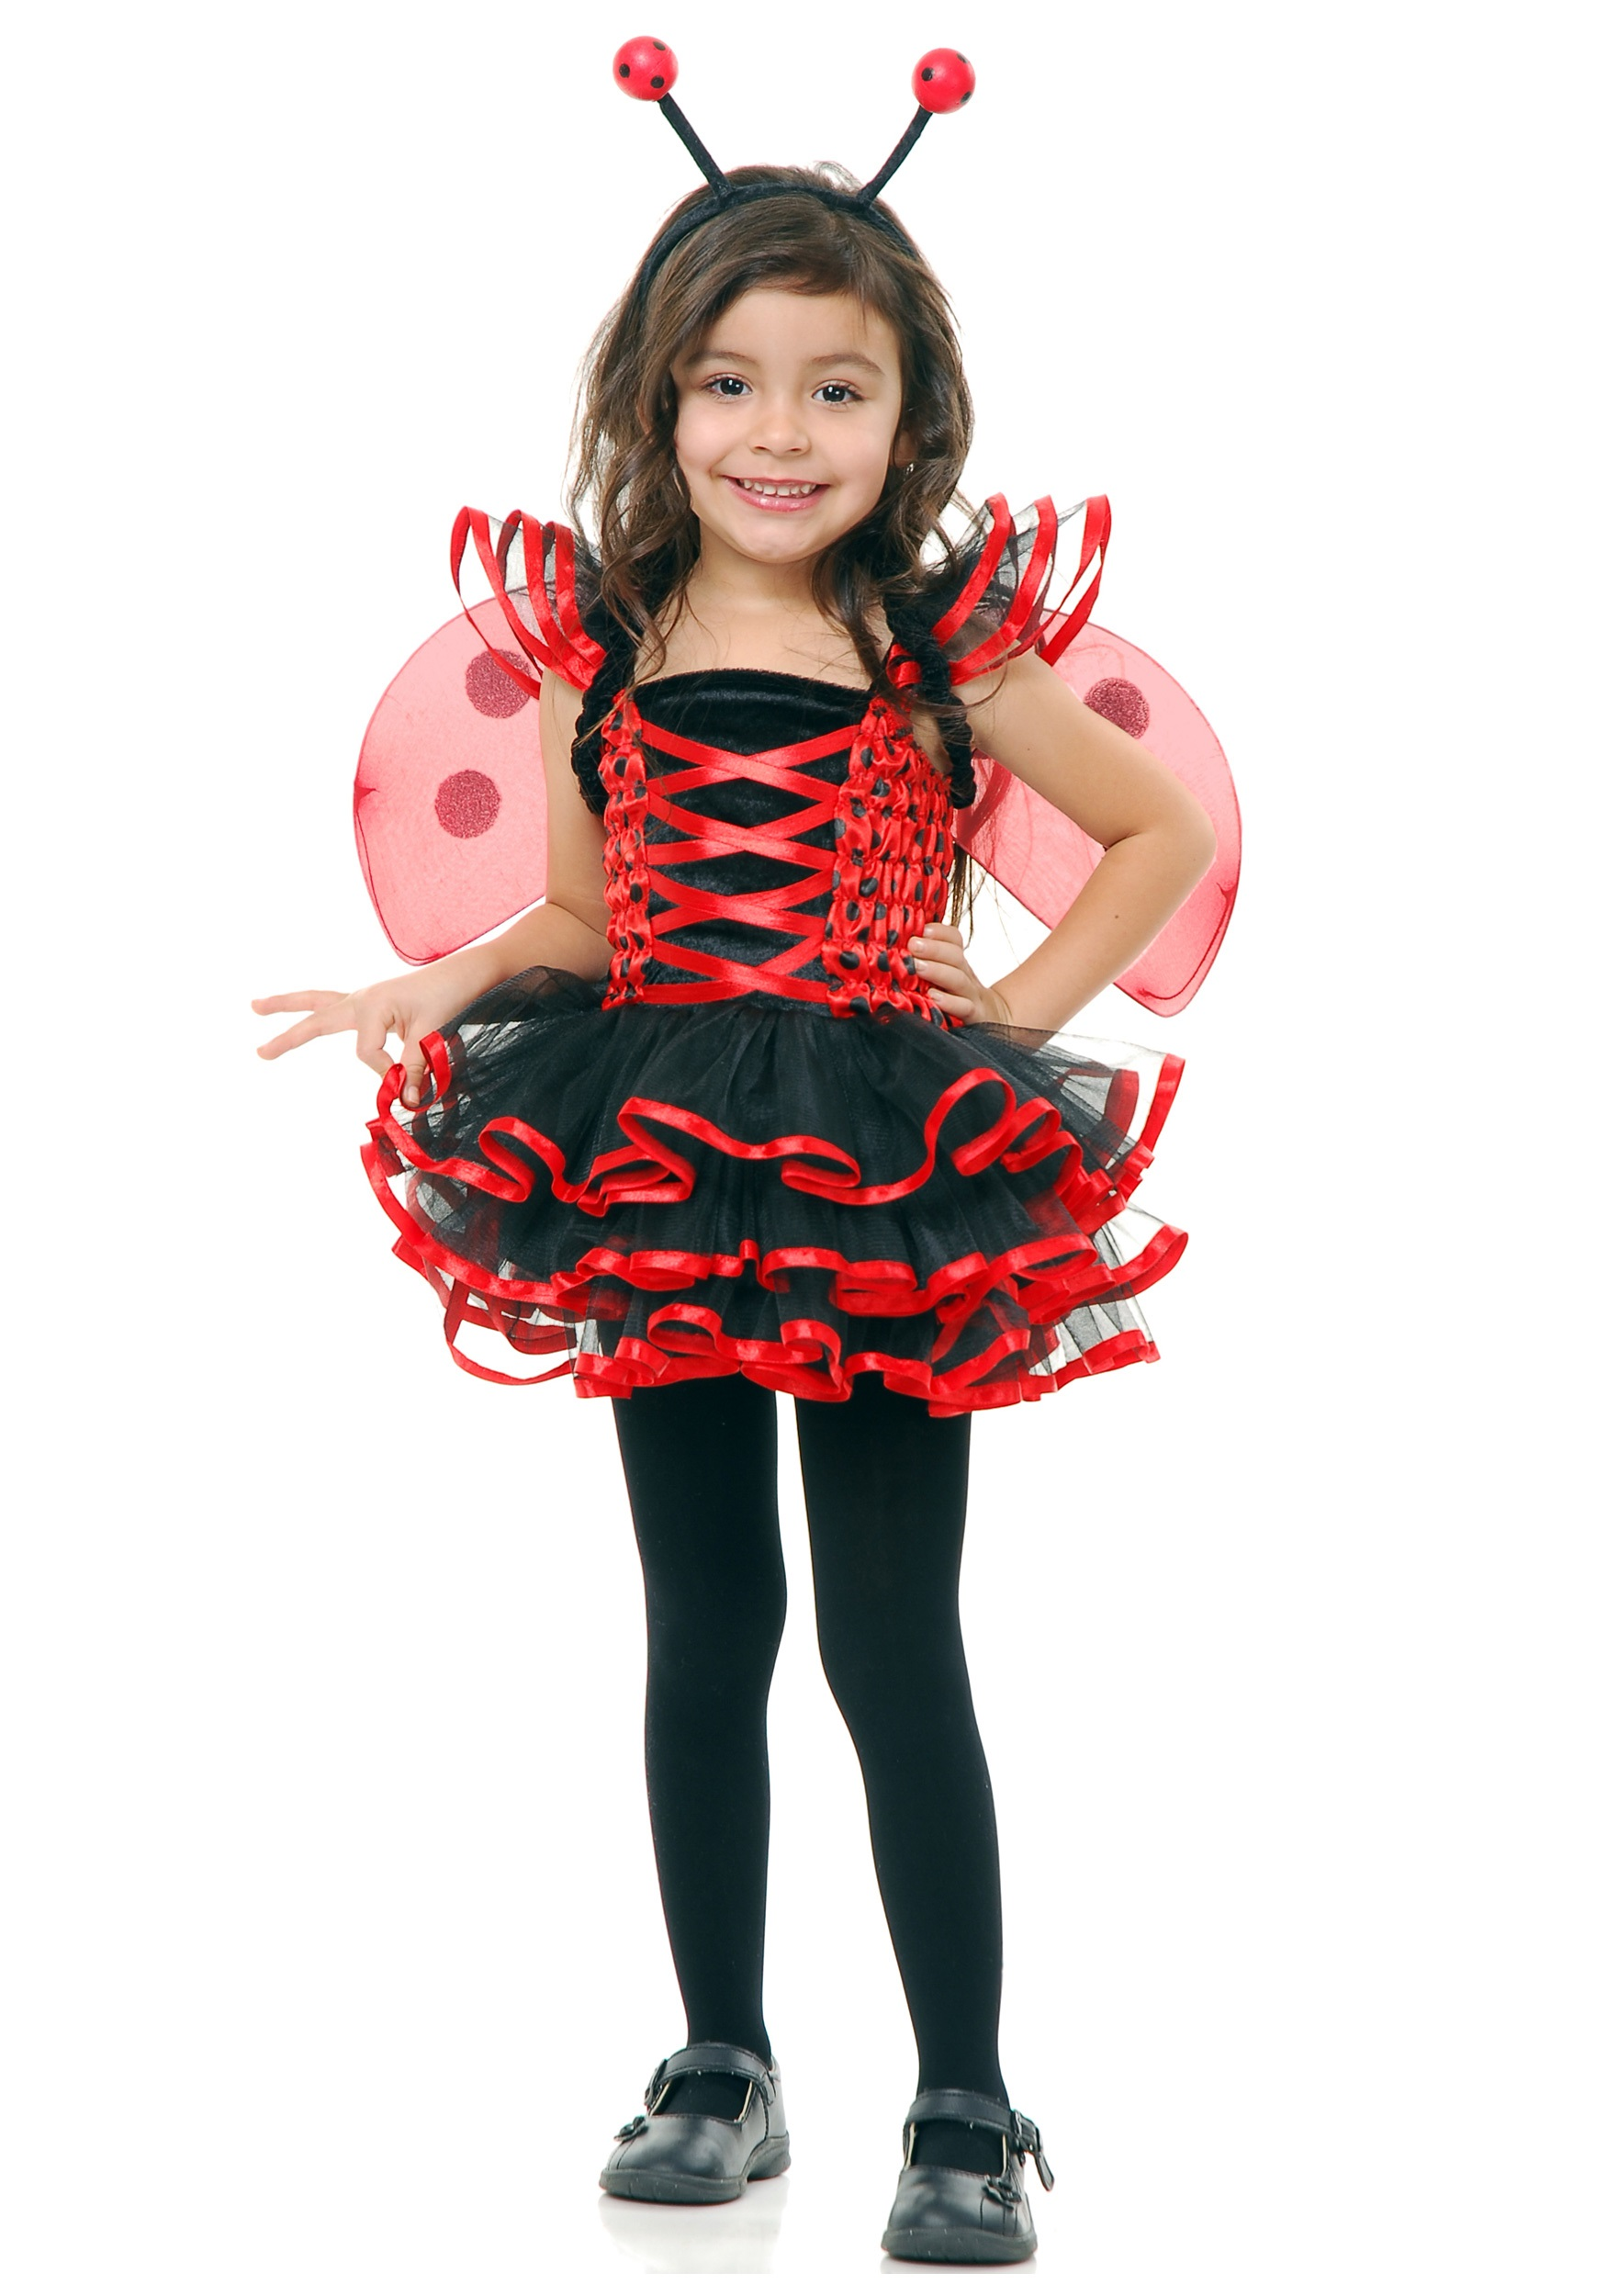 dfea8a23d Toddler Lady Bug Sweetie Costume - Girls Insect Tutu Costumes